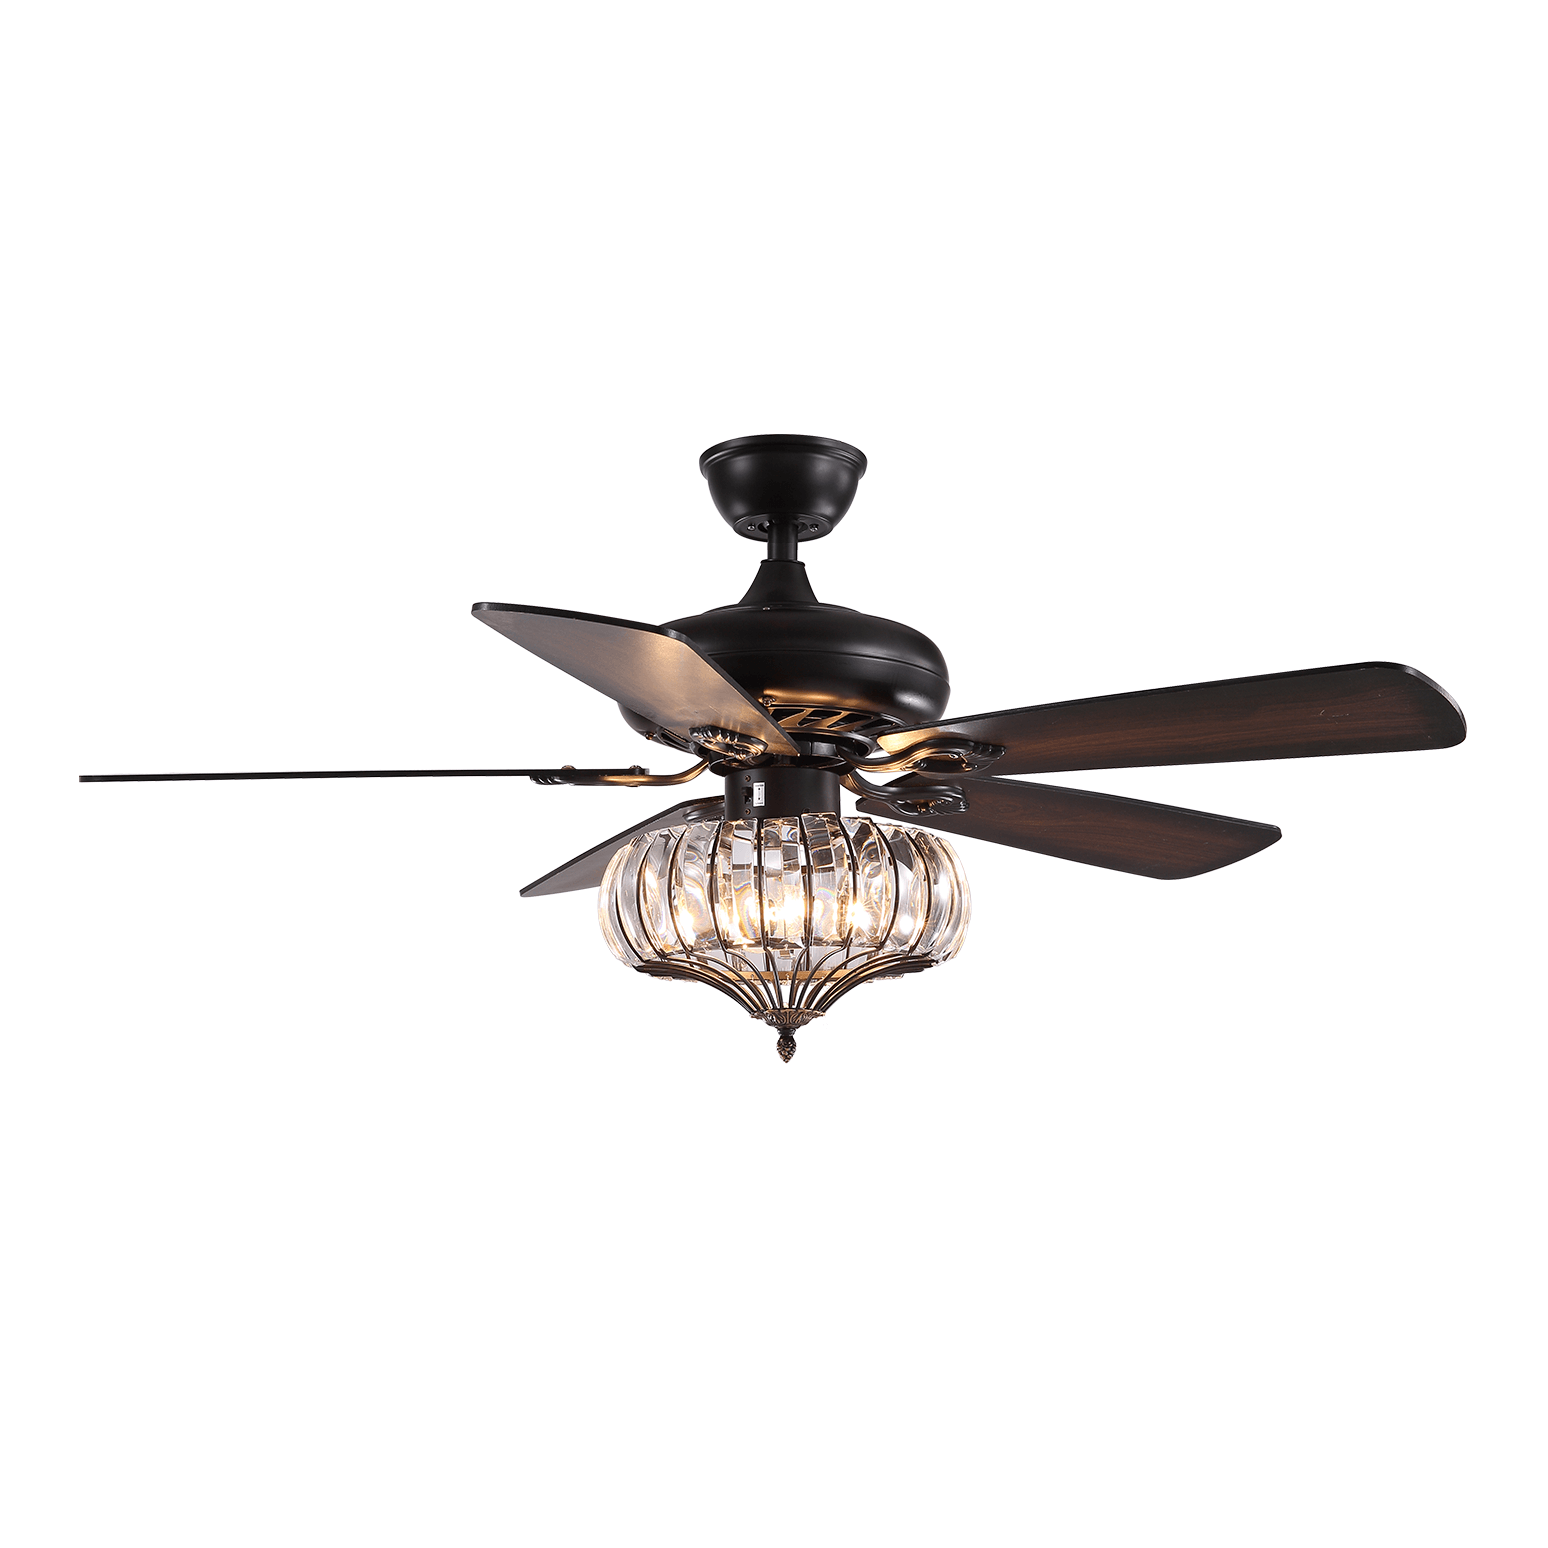 Wood Blade Ceiling Fan